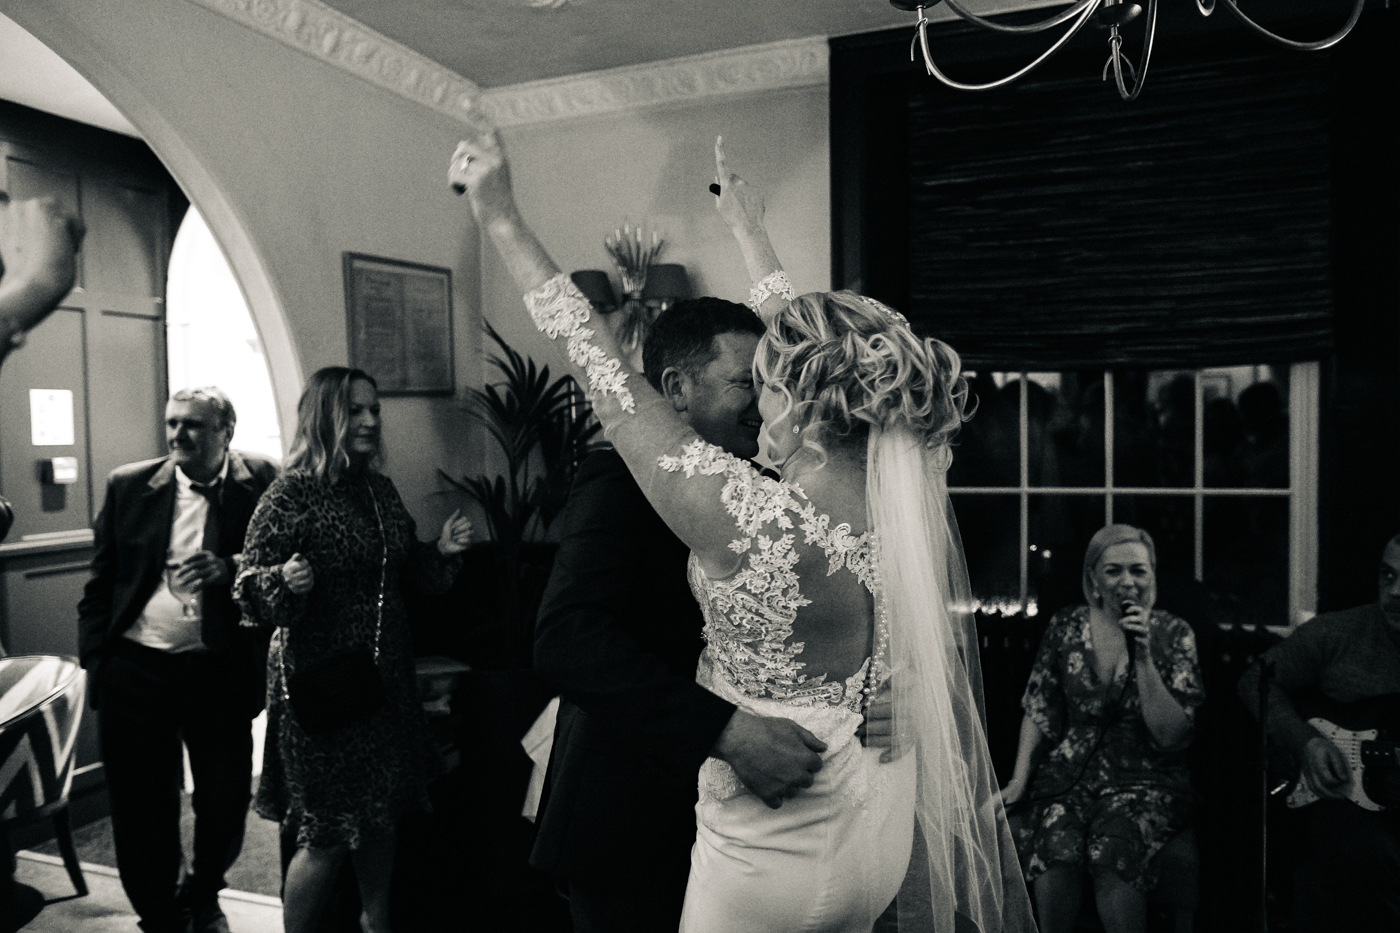 the bride and groom dance, her arms are in the air. cleveland tontine wedding teesside north yorkshire - relaxed and creative wedding photographer